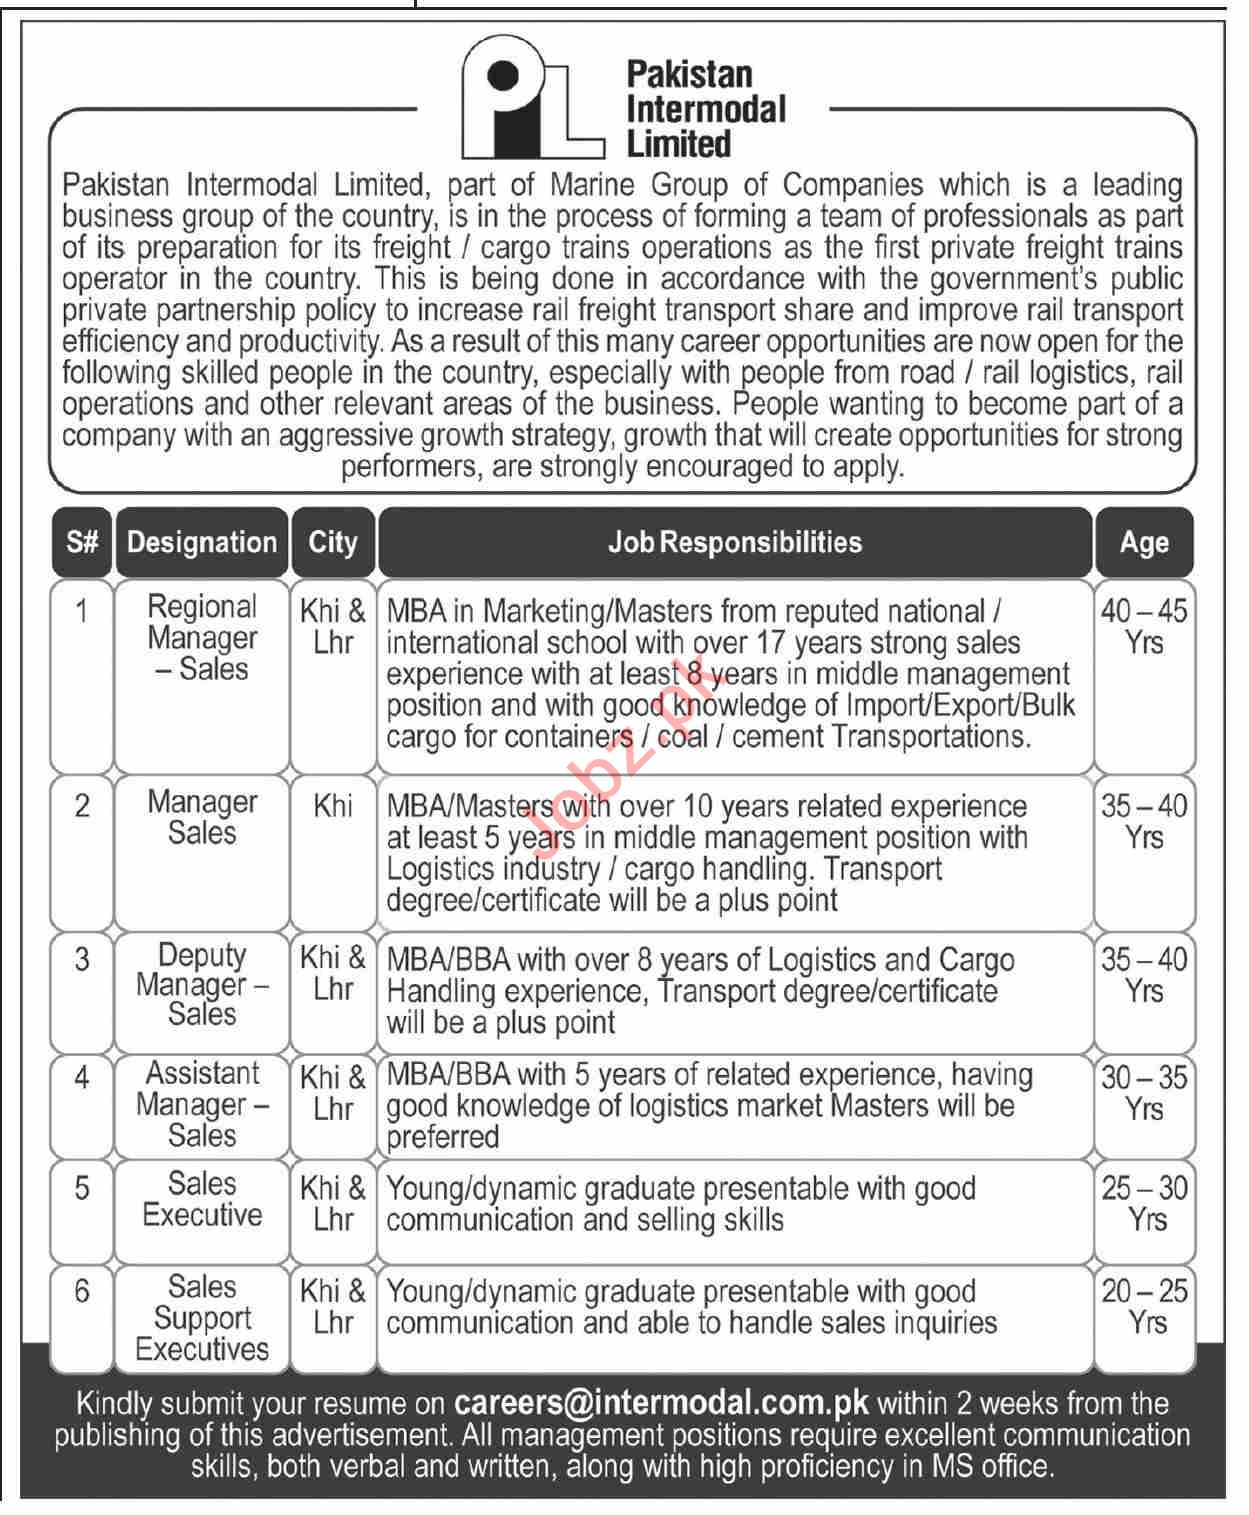 Pakistan Intermodal Limited Jobs 2020 Regional Manager Sales